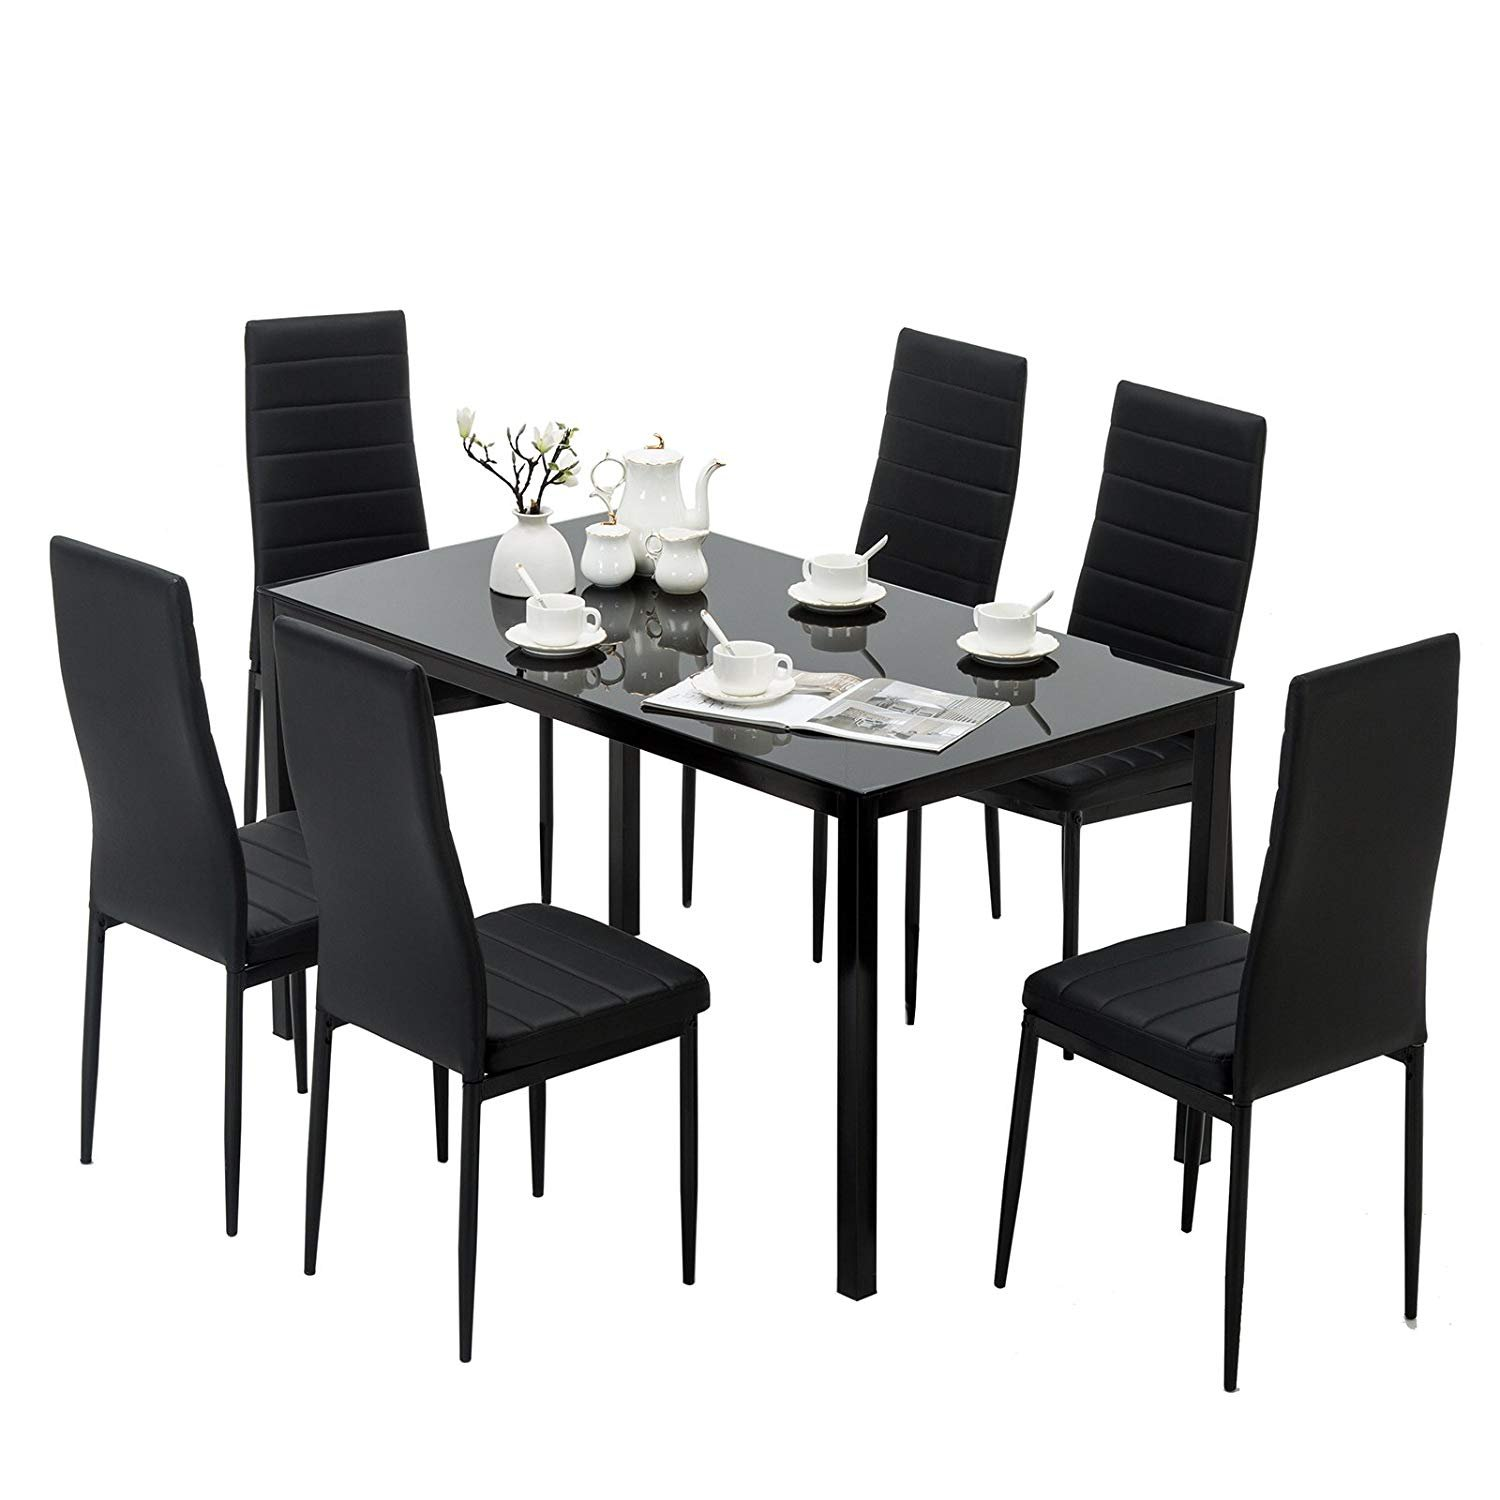 Mecor 7 Piece Kitchen Dining Set, Glass Top Table with 6 Leather Chairs Breakfast Furniture,Black by Mecor (Image #2)